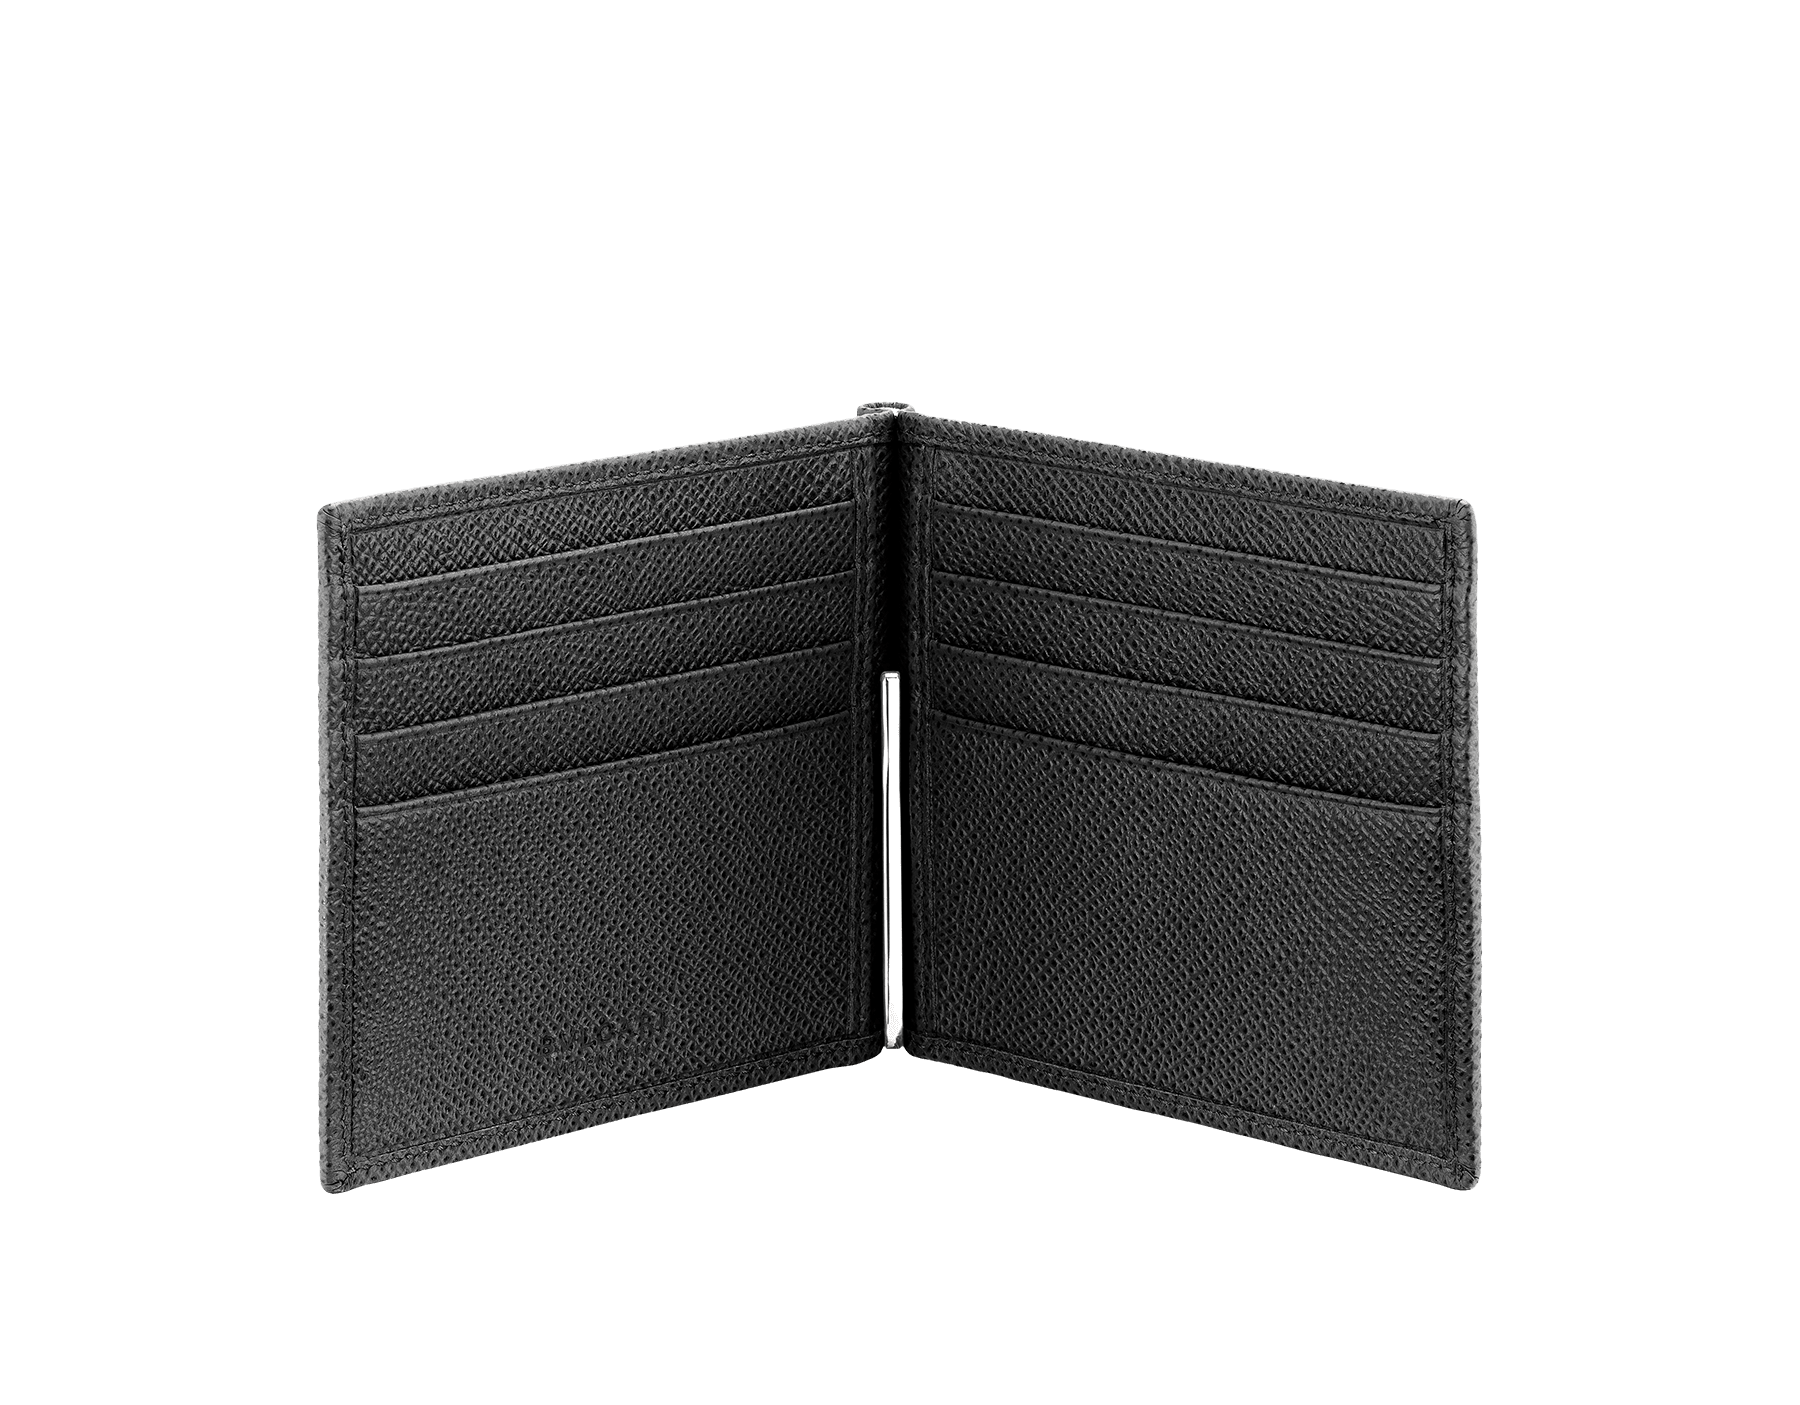 Wallet hipster for men in black grain calf leather with bill clip. Brass palladium plated hardware featuring the BVLGARI BVLGARI motif. BBM-WLT-HIP-CLI-8C image 2